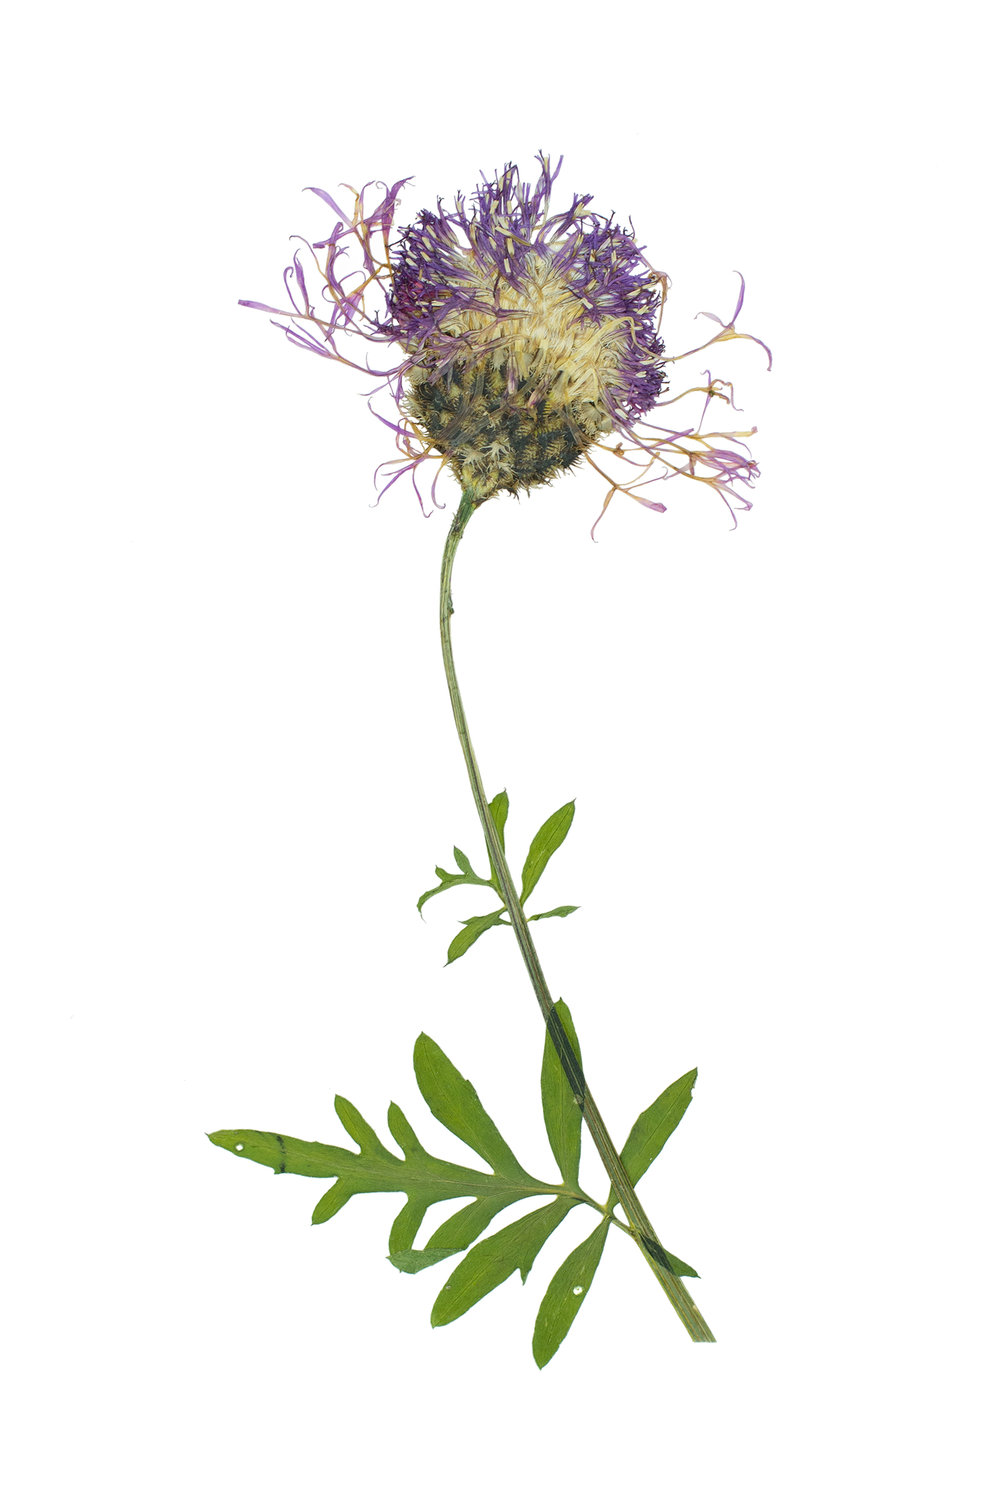 Greater Knapweed / Centaurea scabiosa